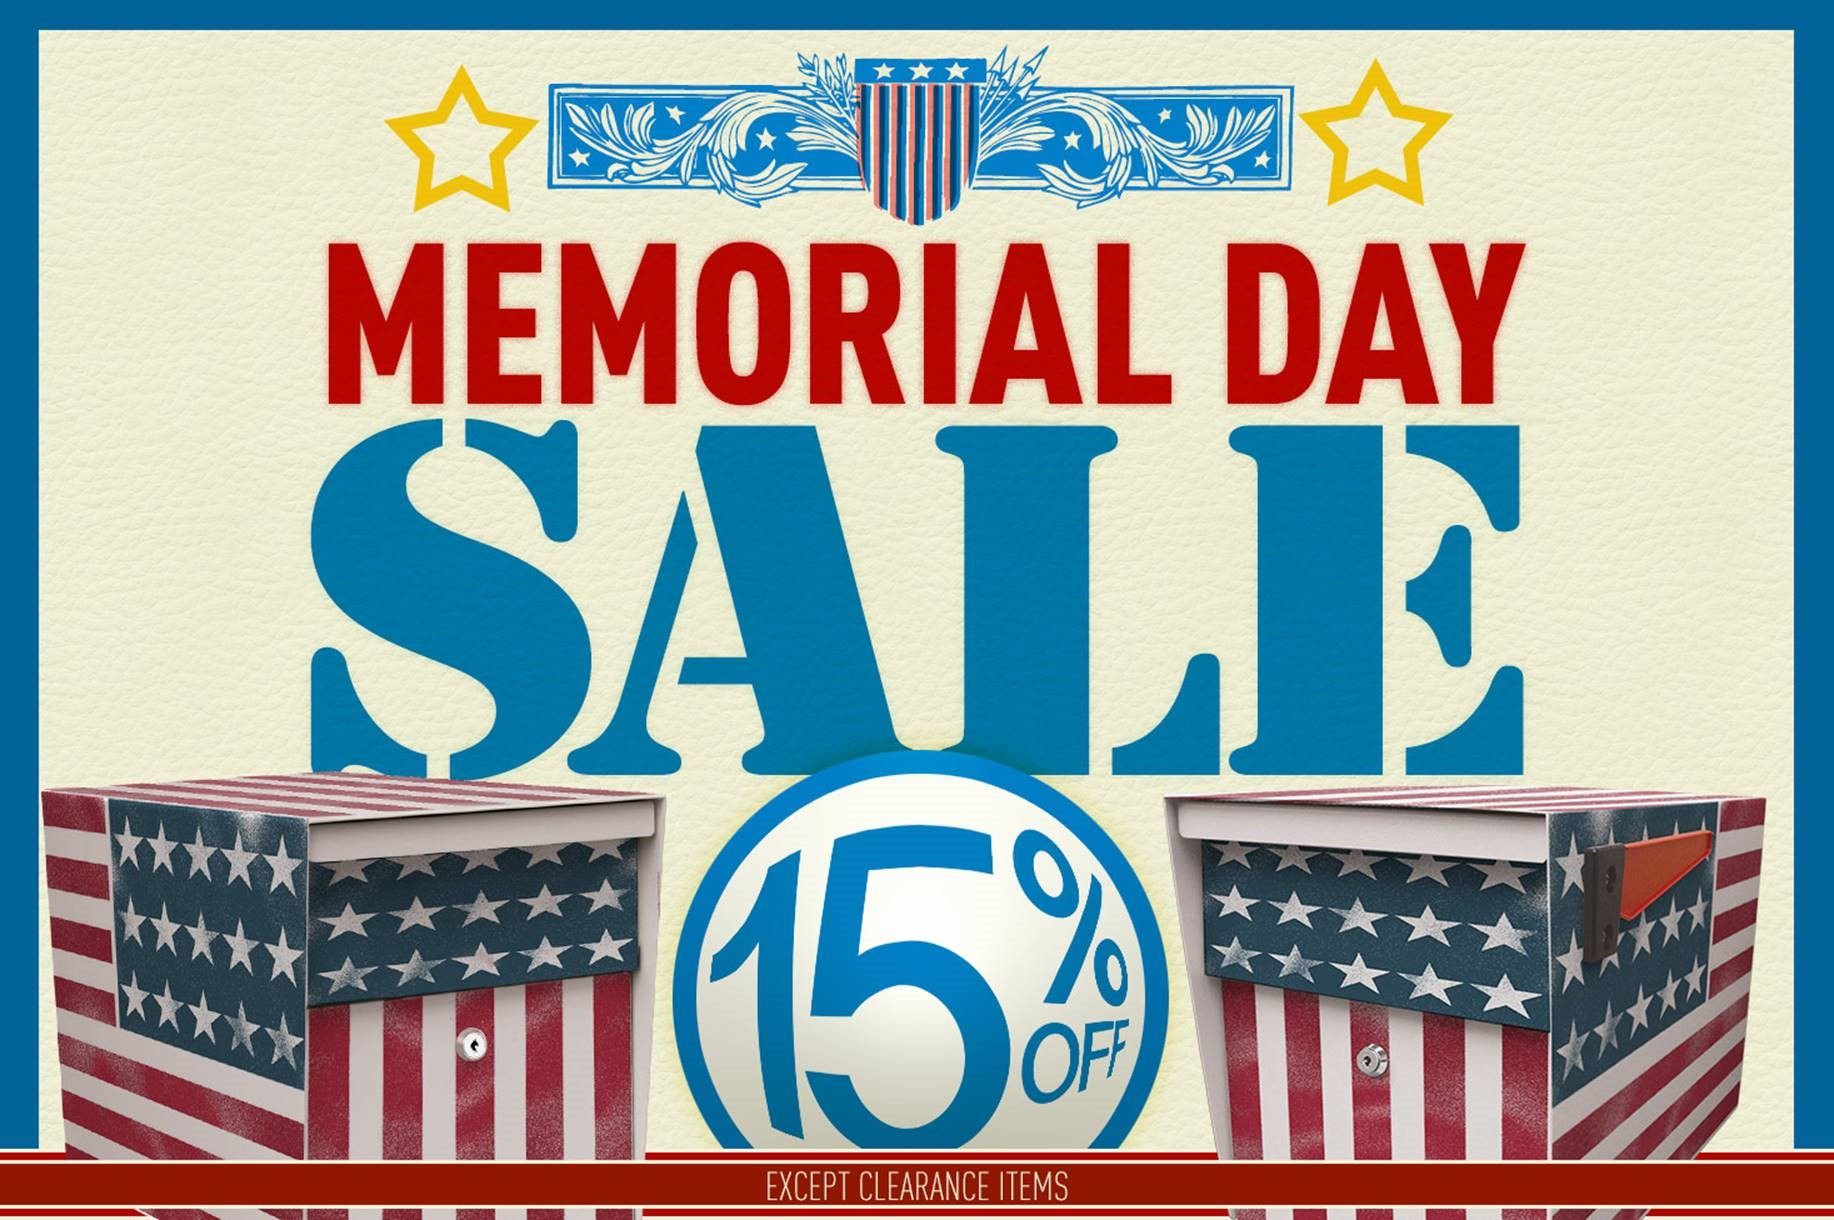 Mail Boss Memorial Day Sale